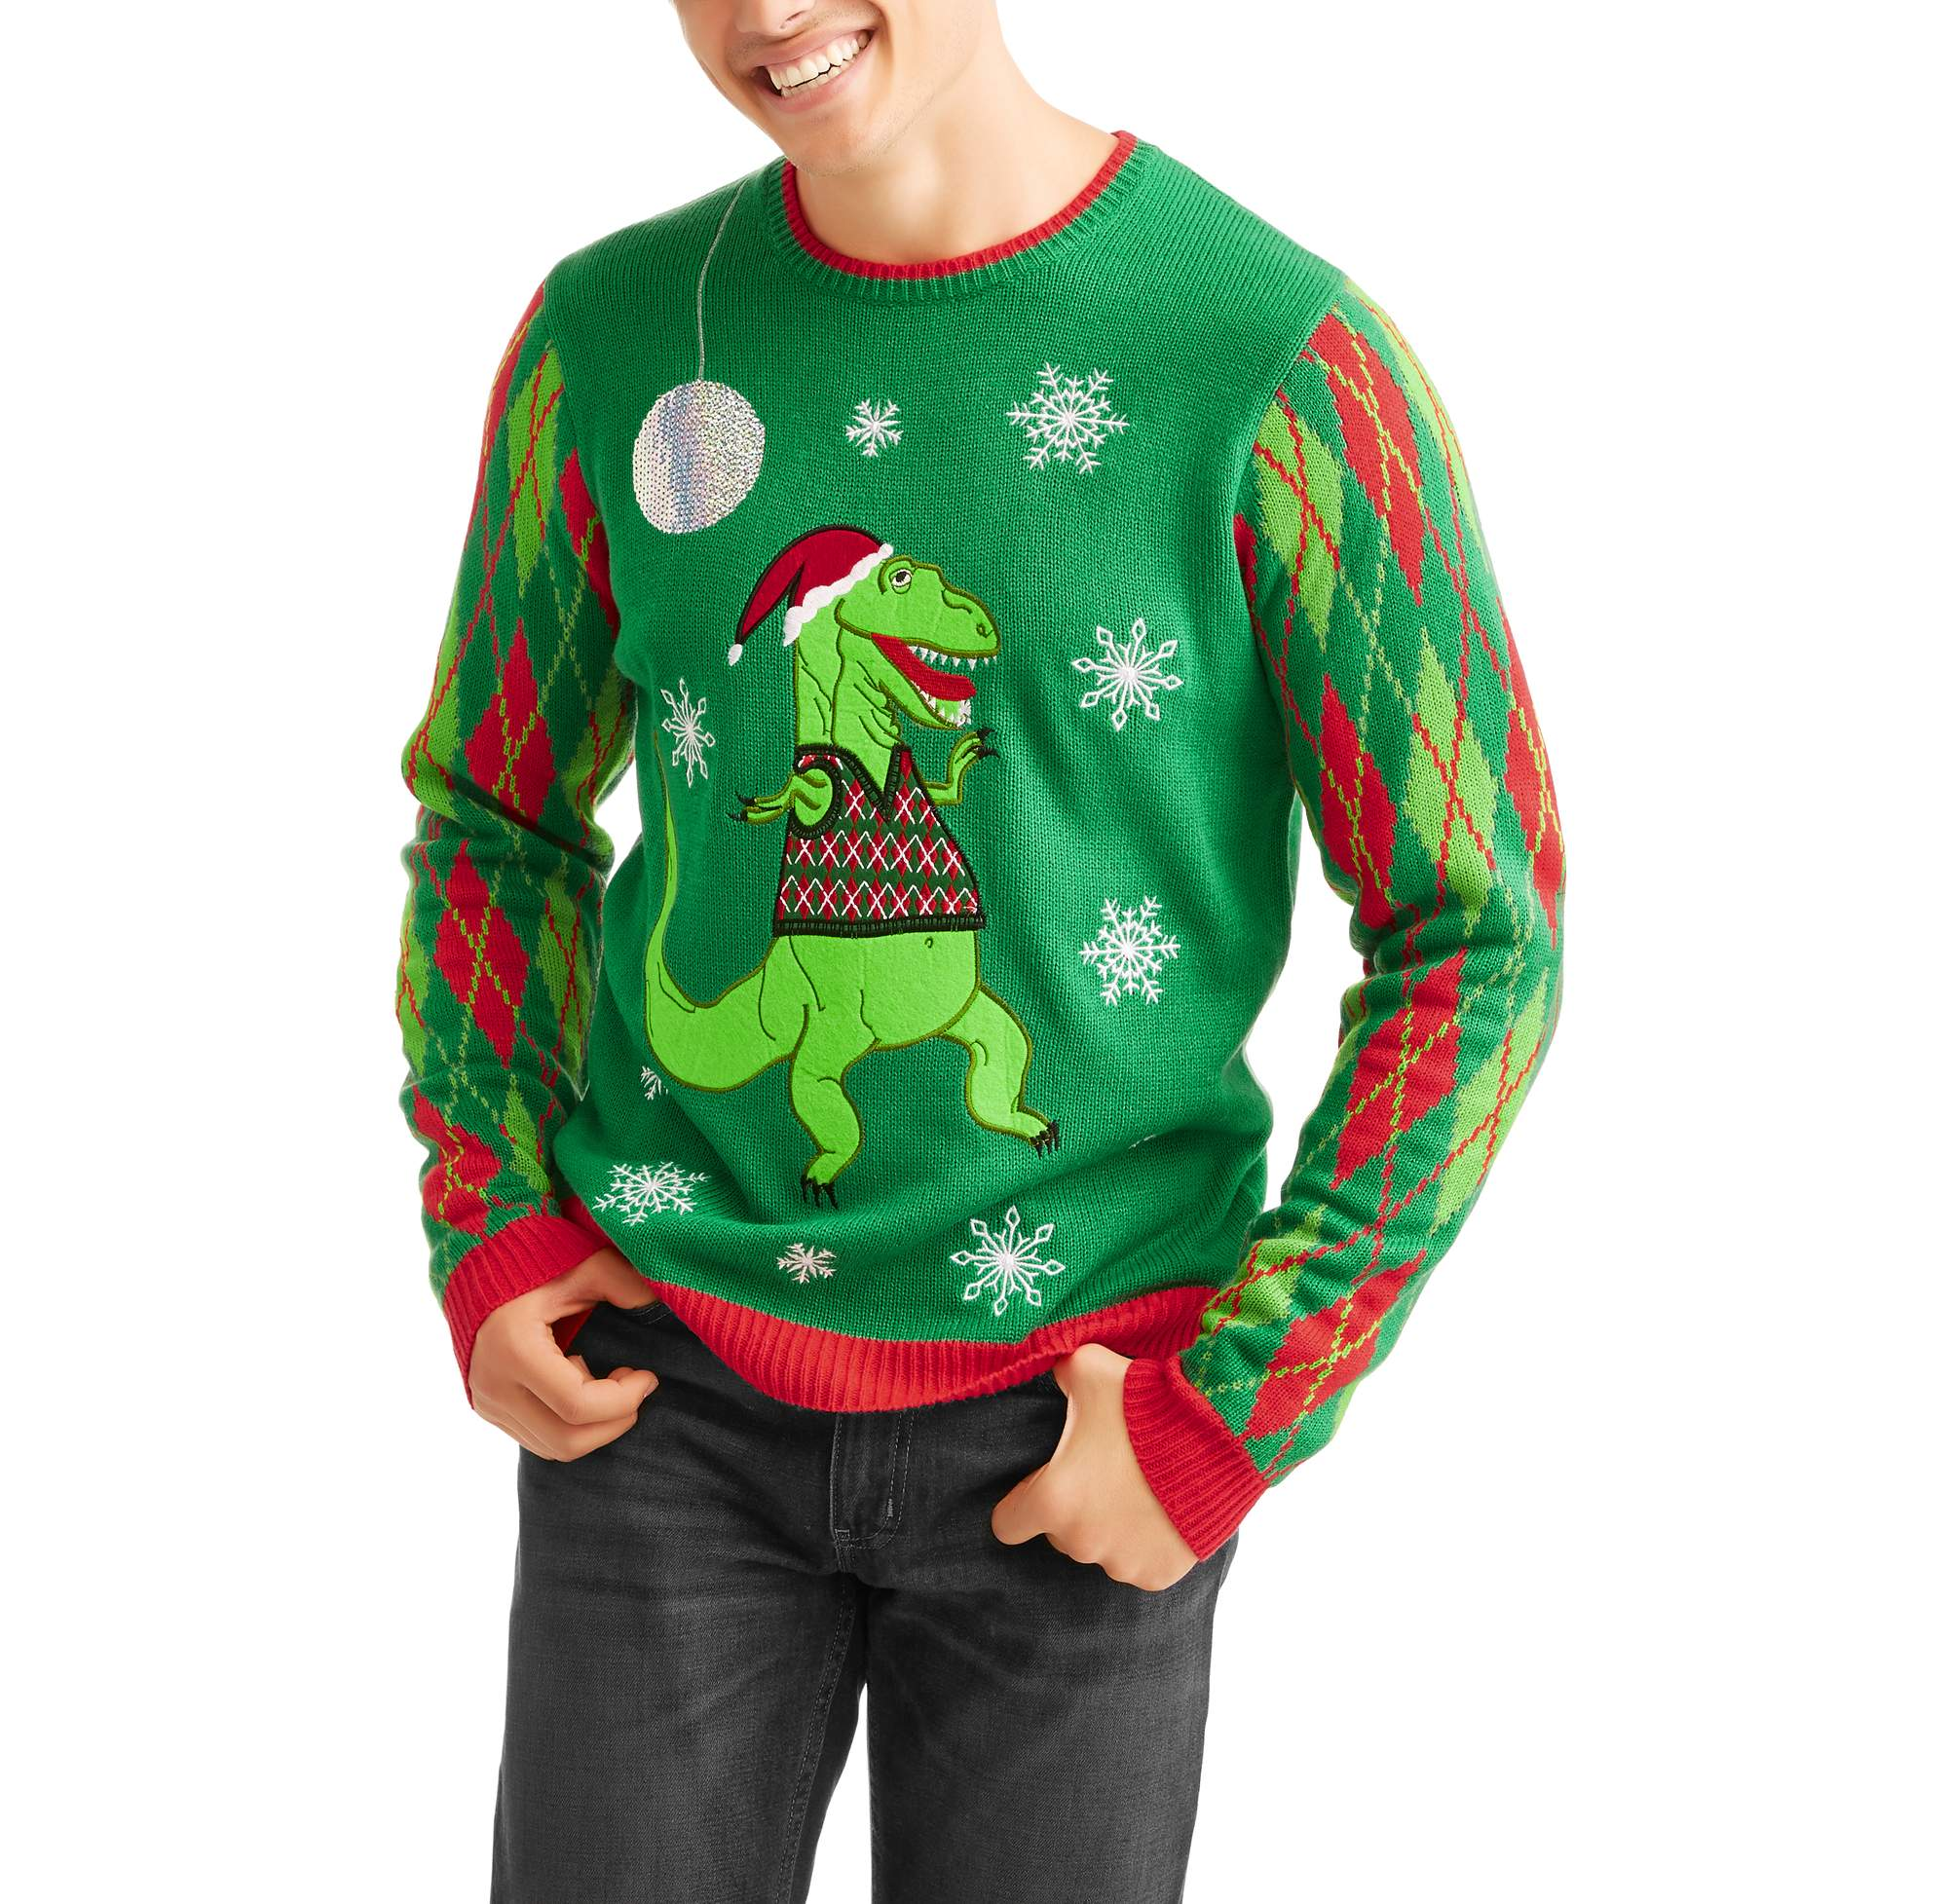 Holiday T Rex Sweater Vest Mens Ugly Christmas Sweater Walmartcom